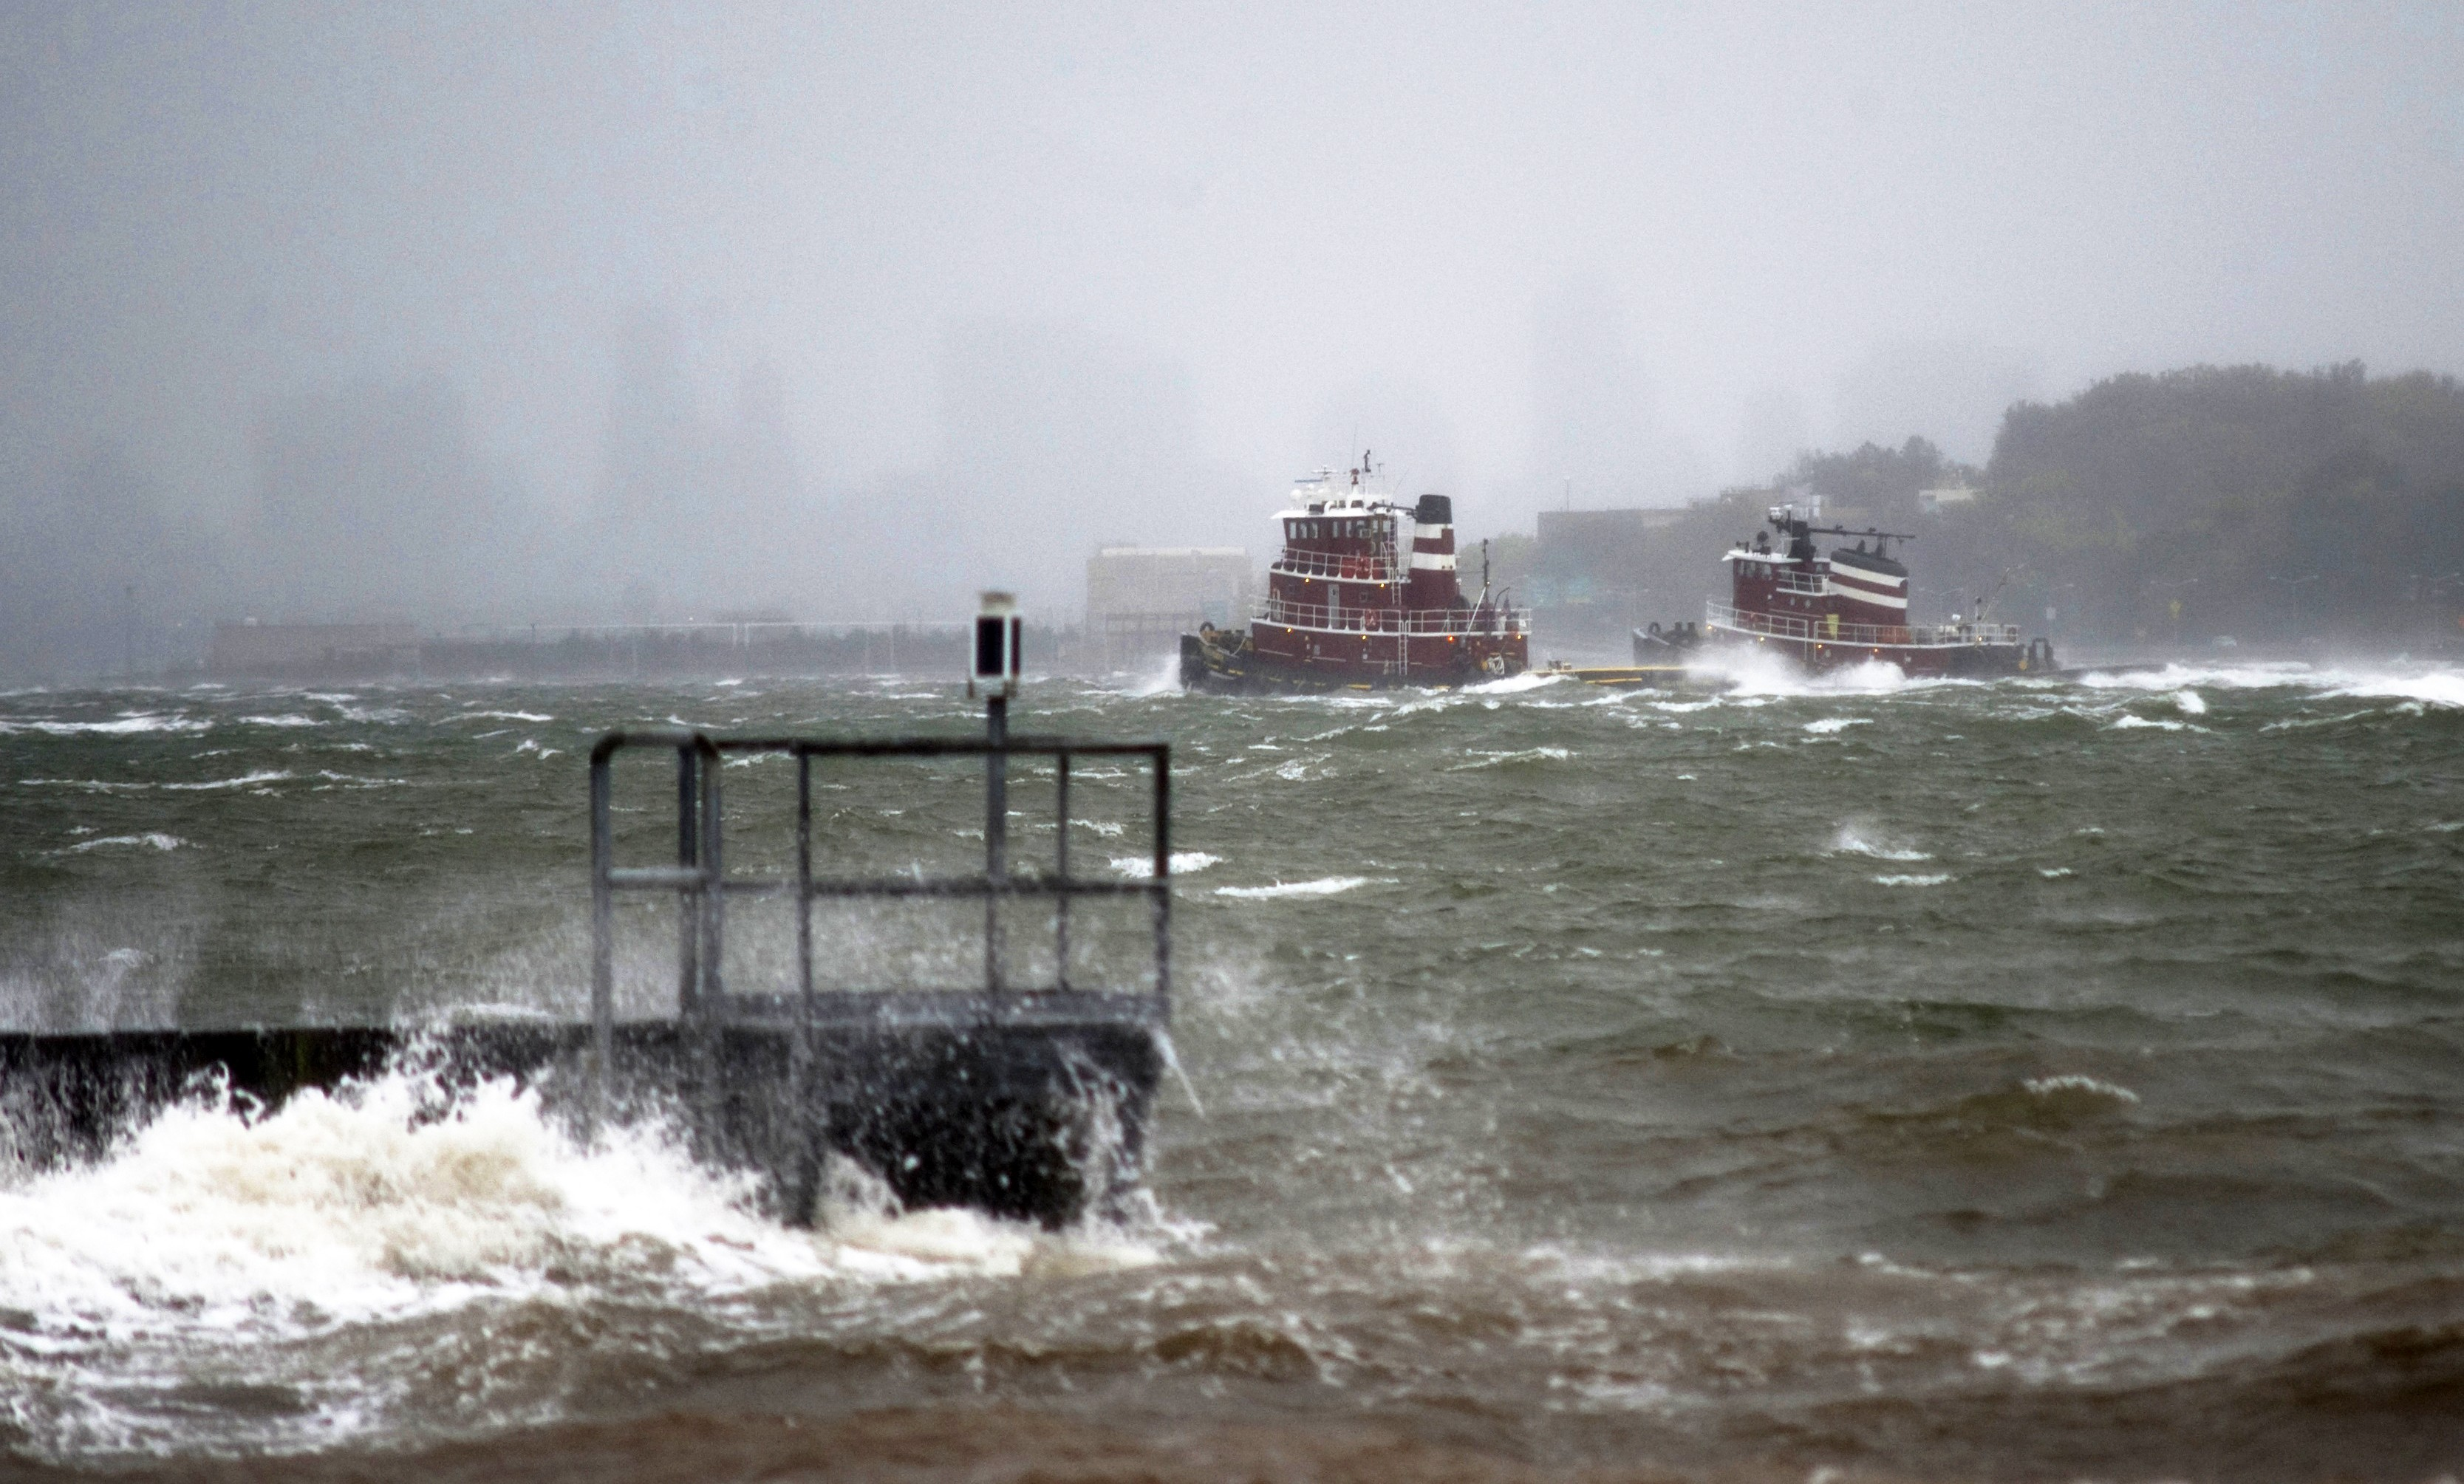 tugboats us coast guard new york hurricane sandy